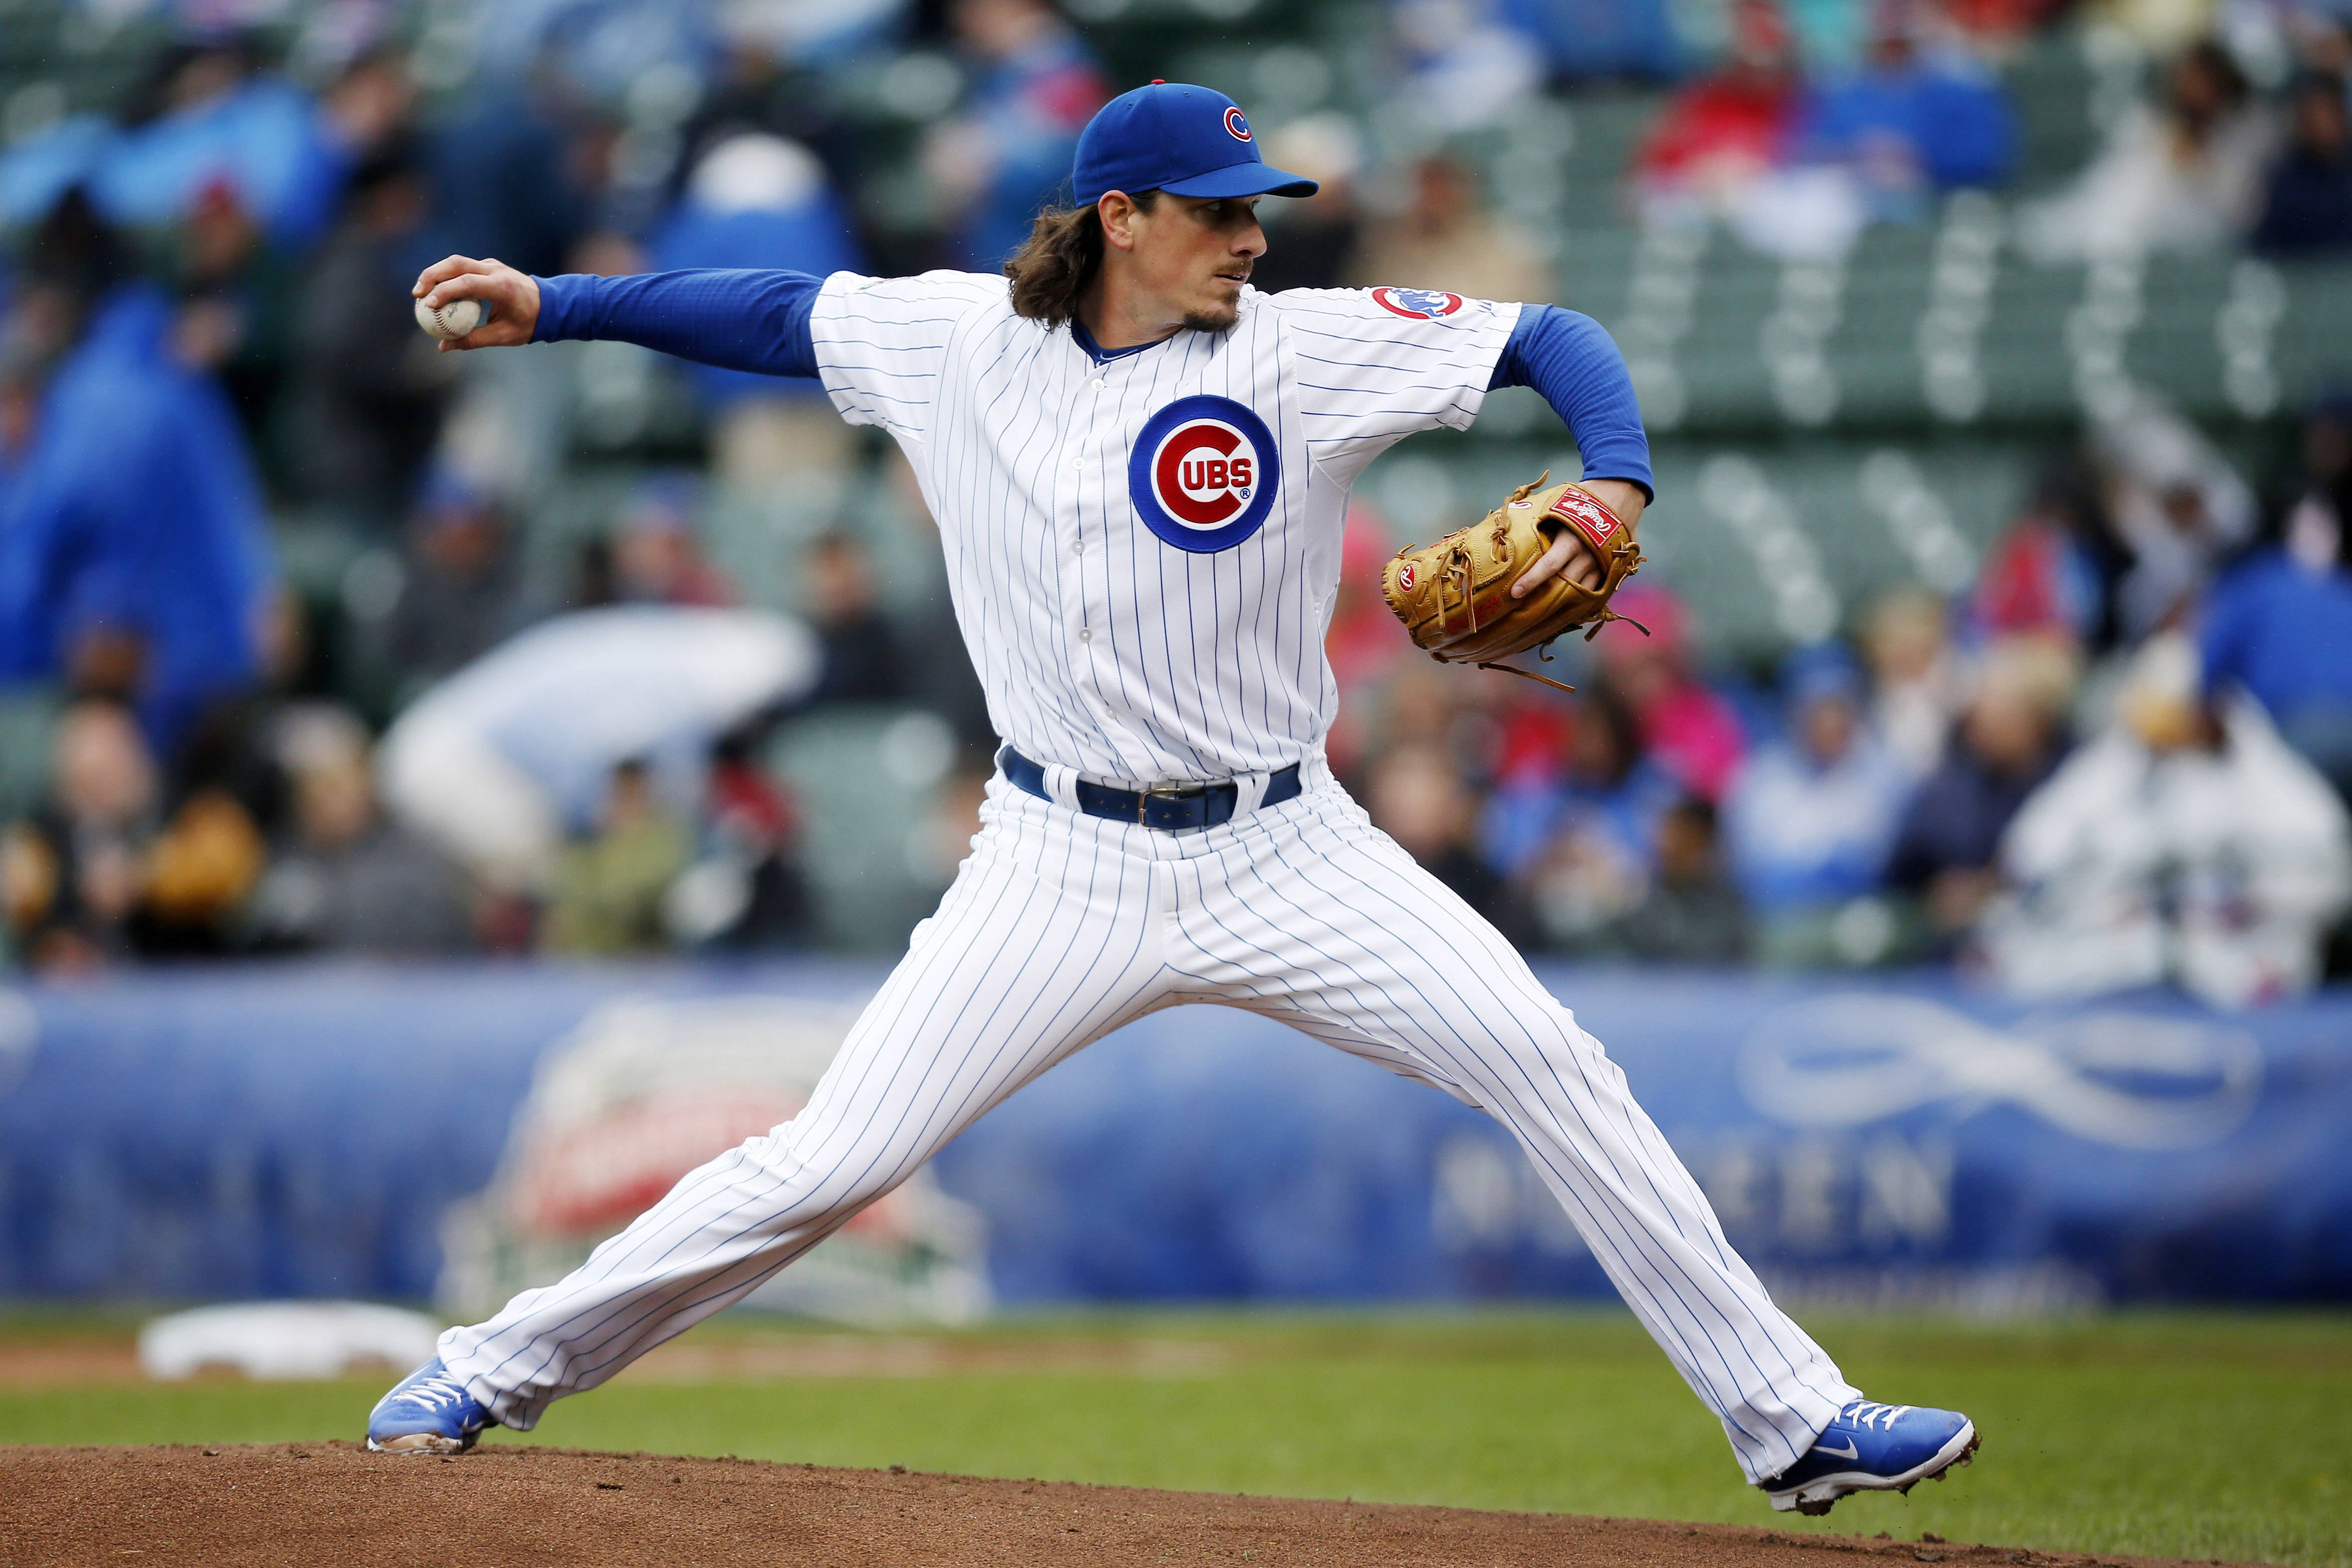 Chicago Cubs starting pitcher Jeff Samardzija delivers against the Milwaukee Brewers during the first inning of a baseball game on Friday, May 16, 2014, in Chicago.